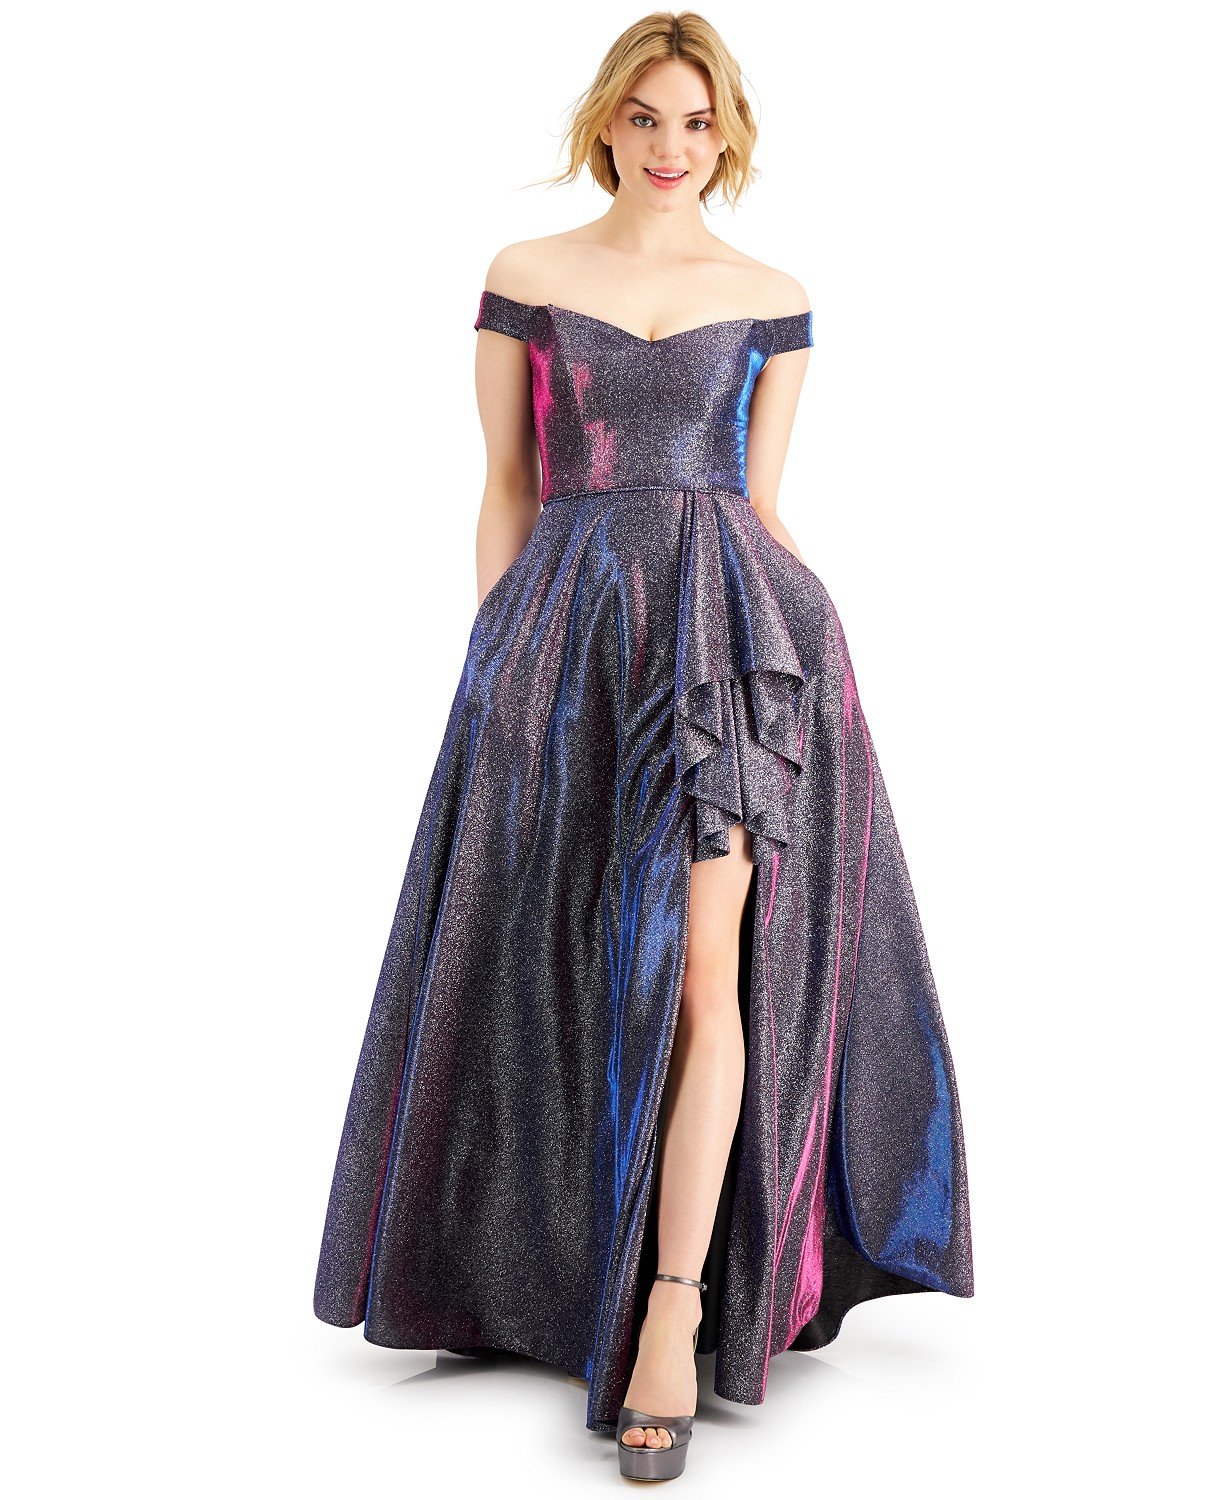 Macy's Prom Off the shoulder glitter Gown fushia color